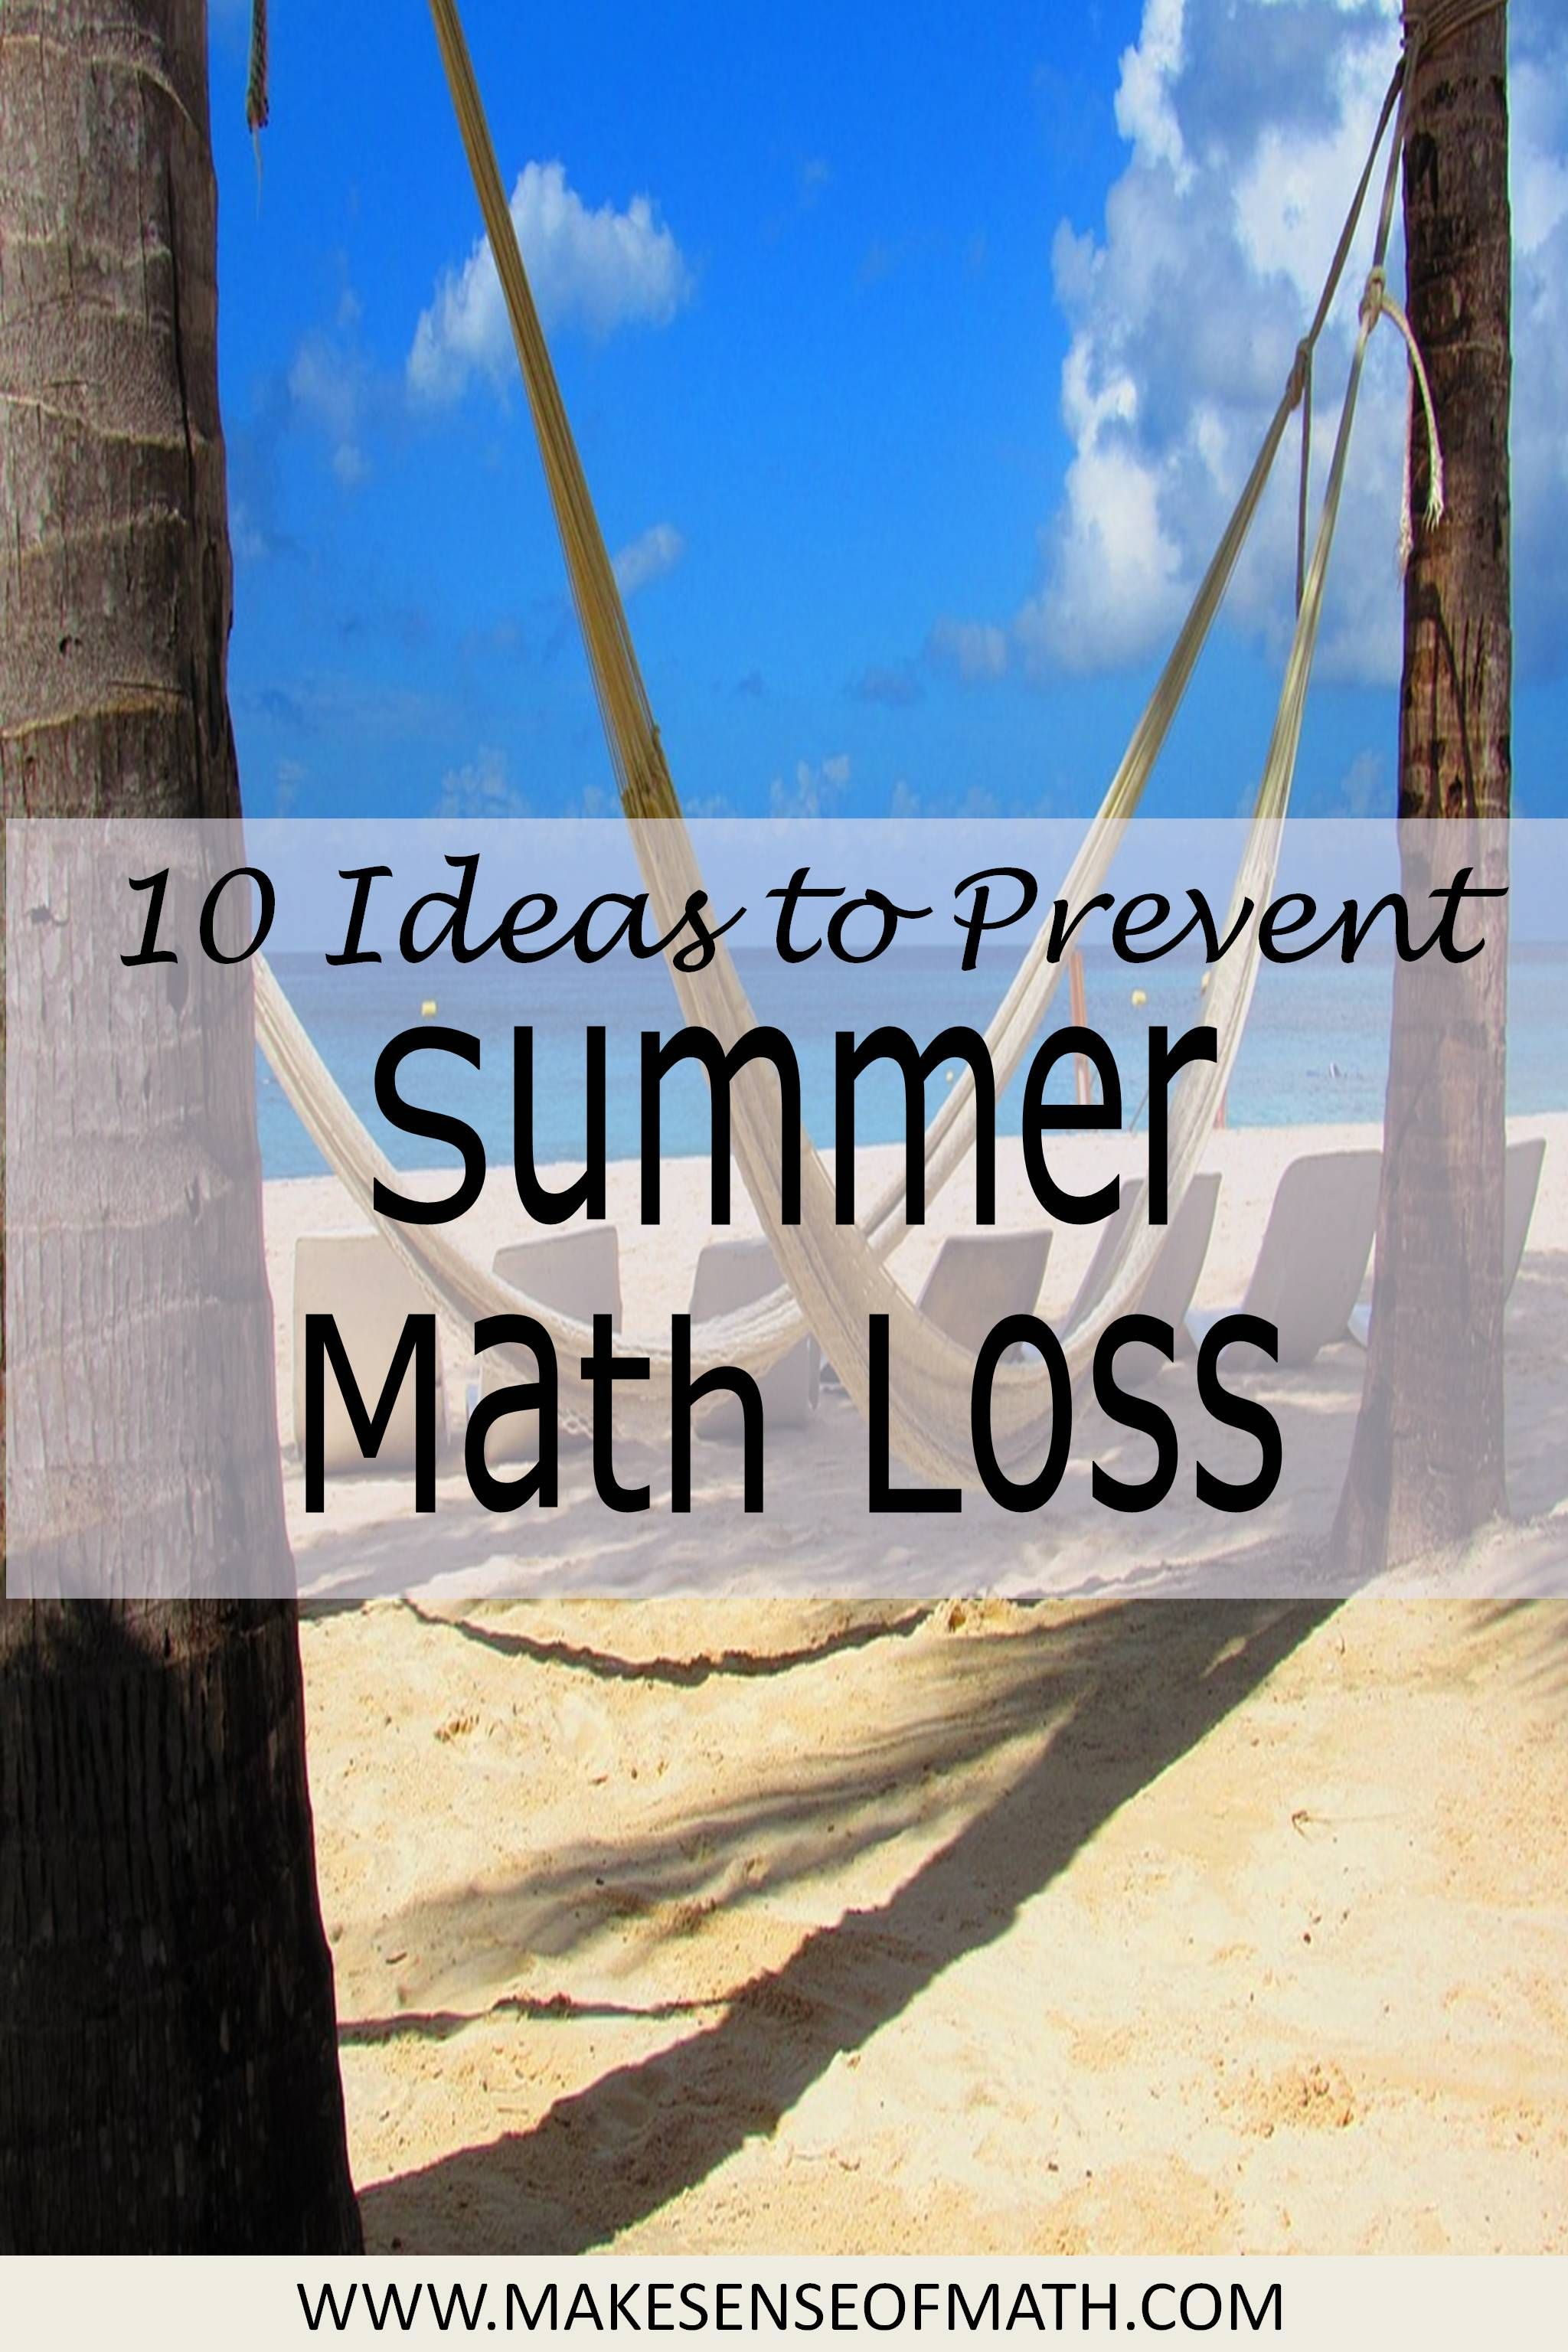 Summer math loss is real, but it is preventable.  Help your middle school math  students engage in math during the summer to prevent math loss.  These are great ideas for any middle school math student to see math in the real-world.  Click on for some great ideas. #mathintherealworld Summer math loss is real, but it is preventable.  Help your middle school math  students engage in math during the summer to prevent math loss.  These are great ideas for any middle school math student to see math i #mathintherealworld